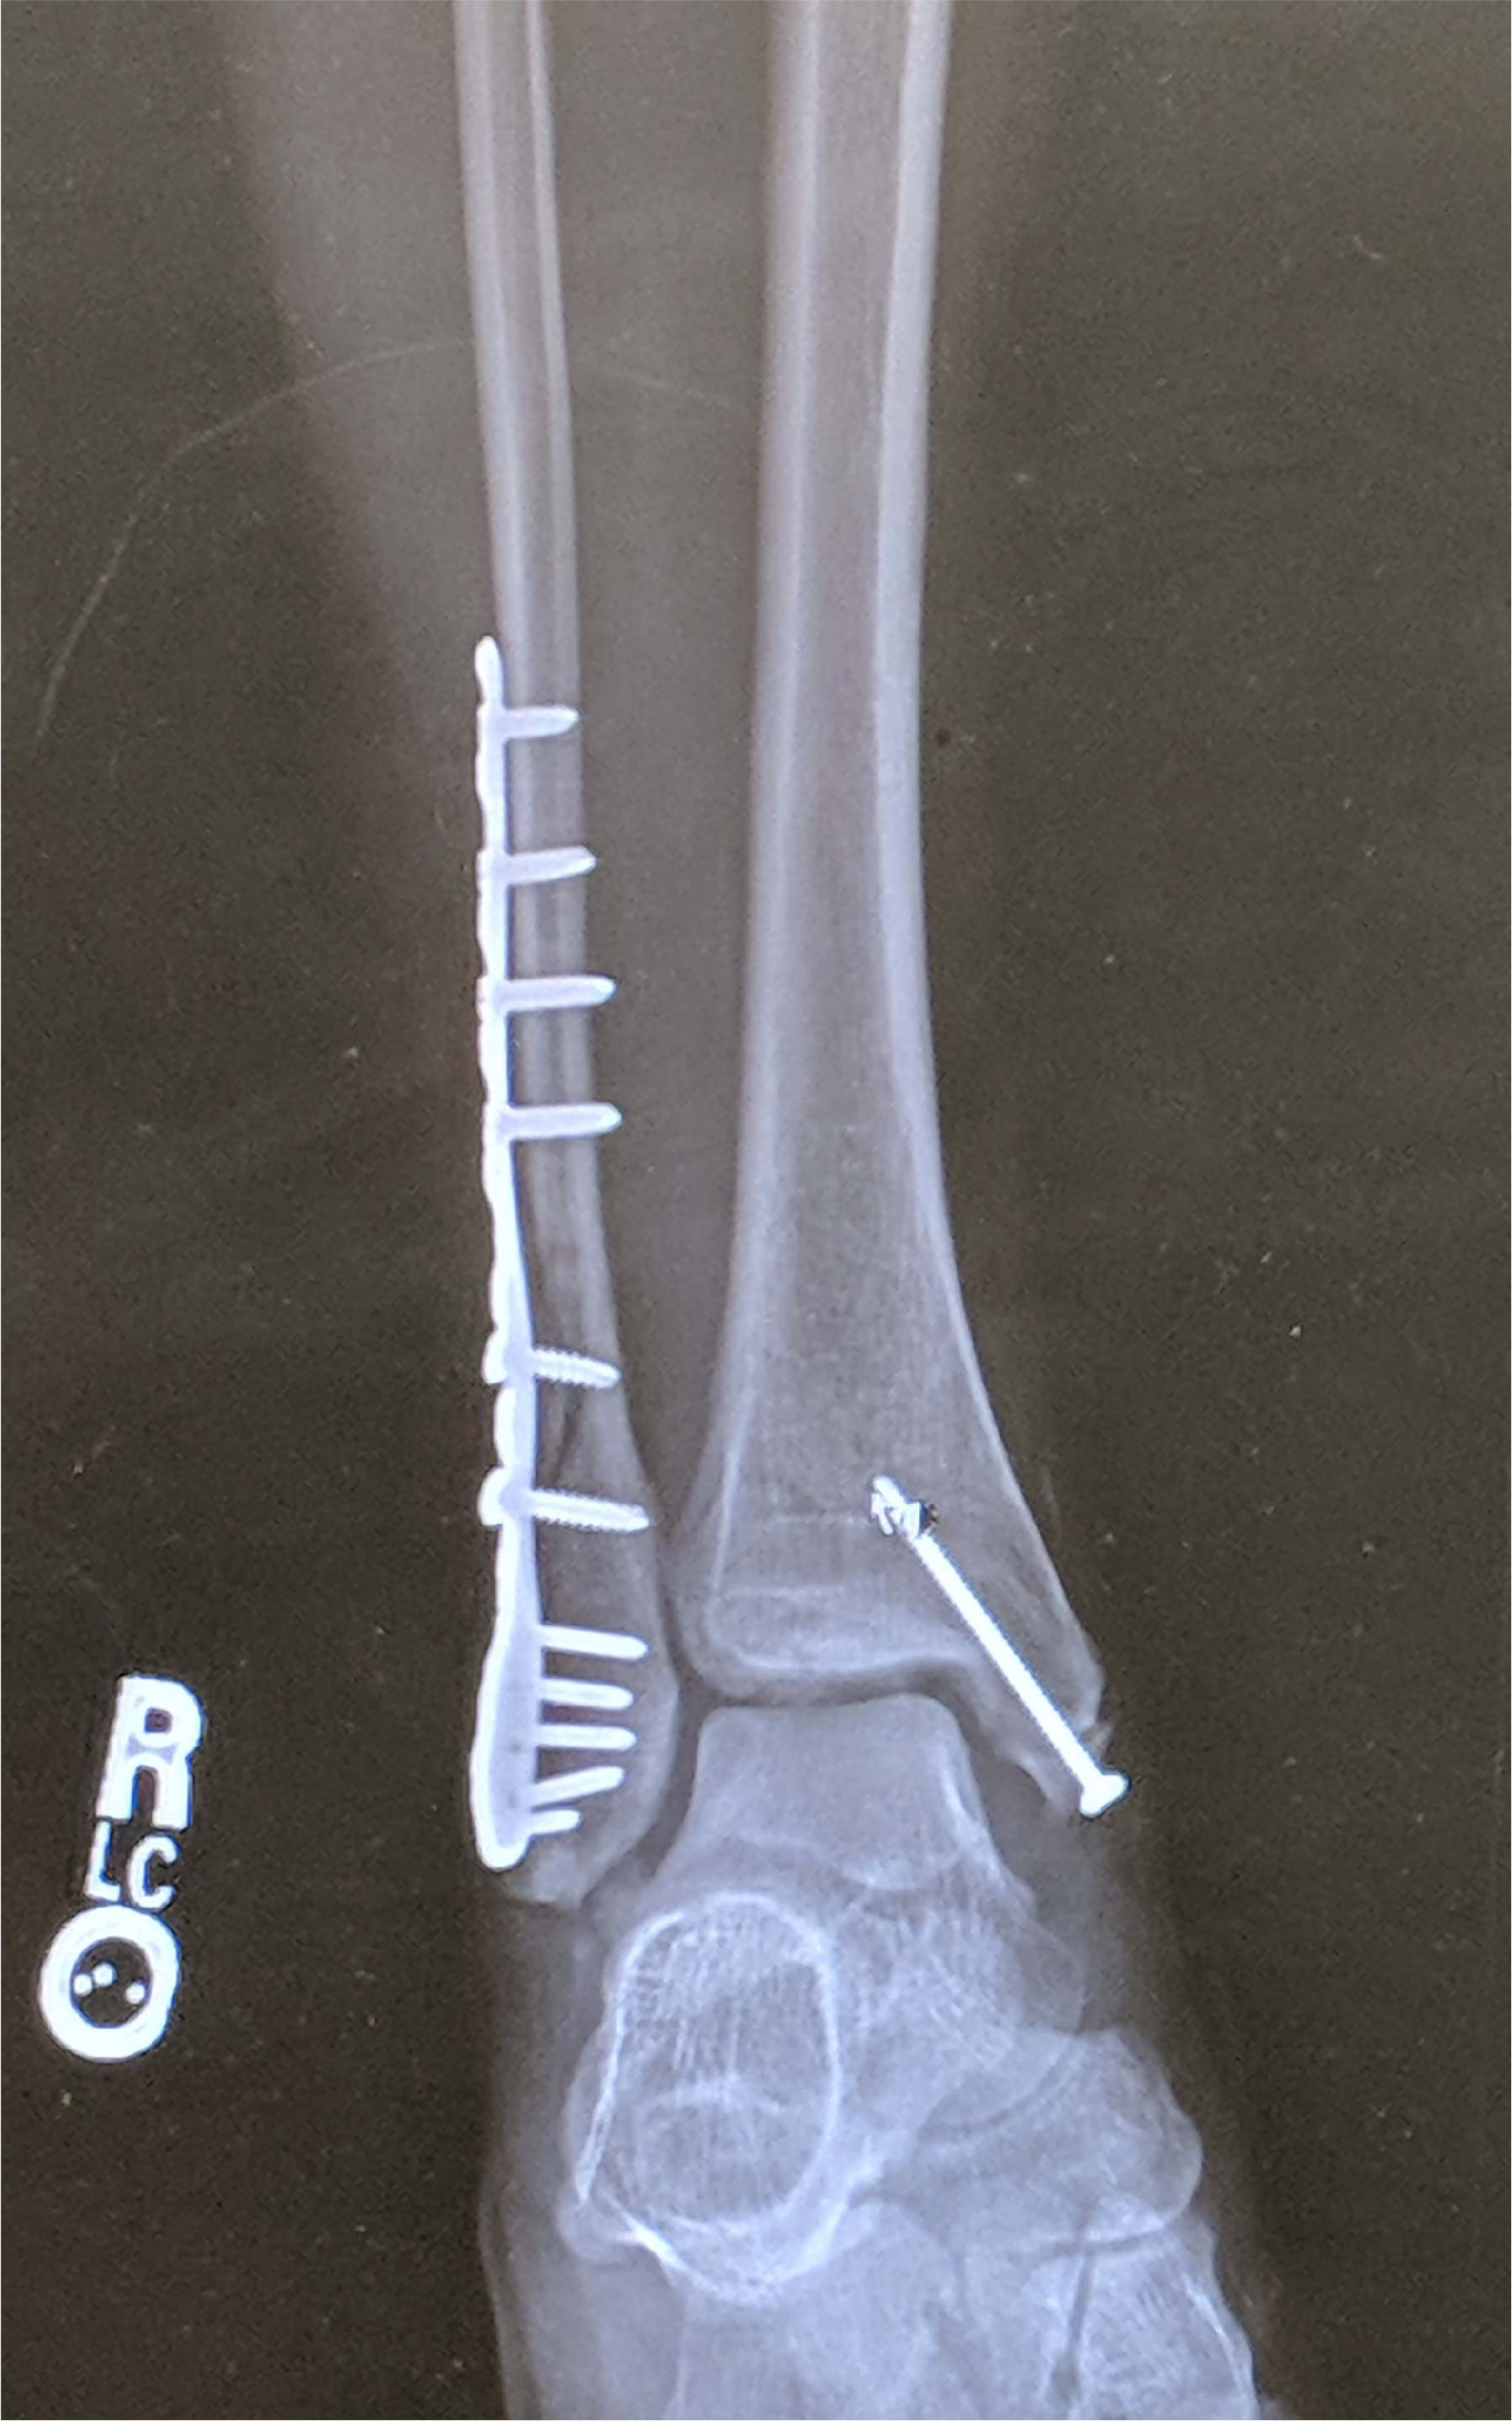 Ankle x-ray with metal hardware